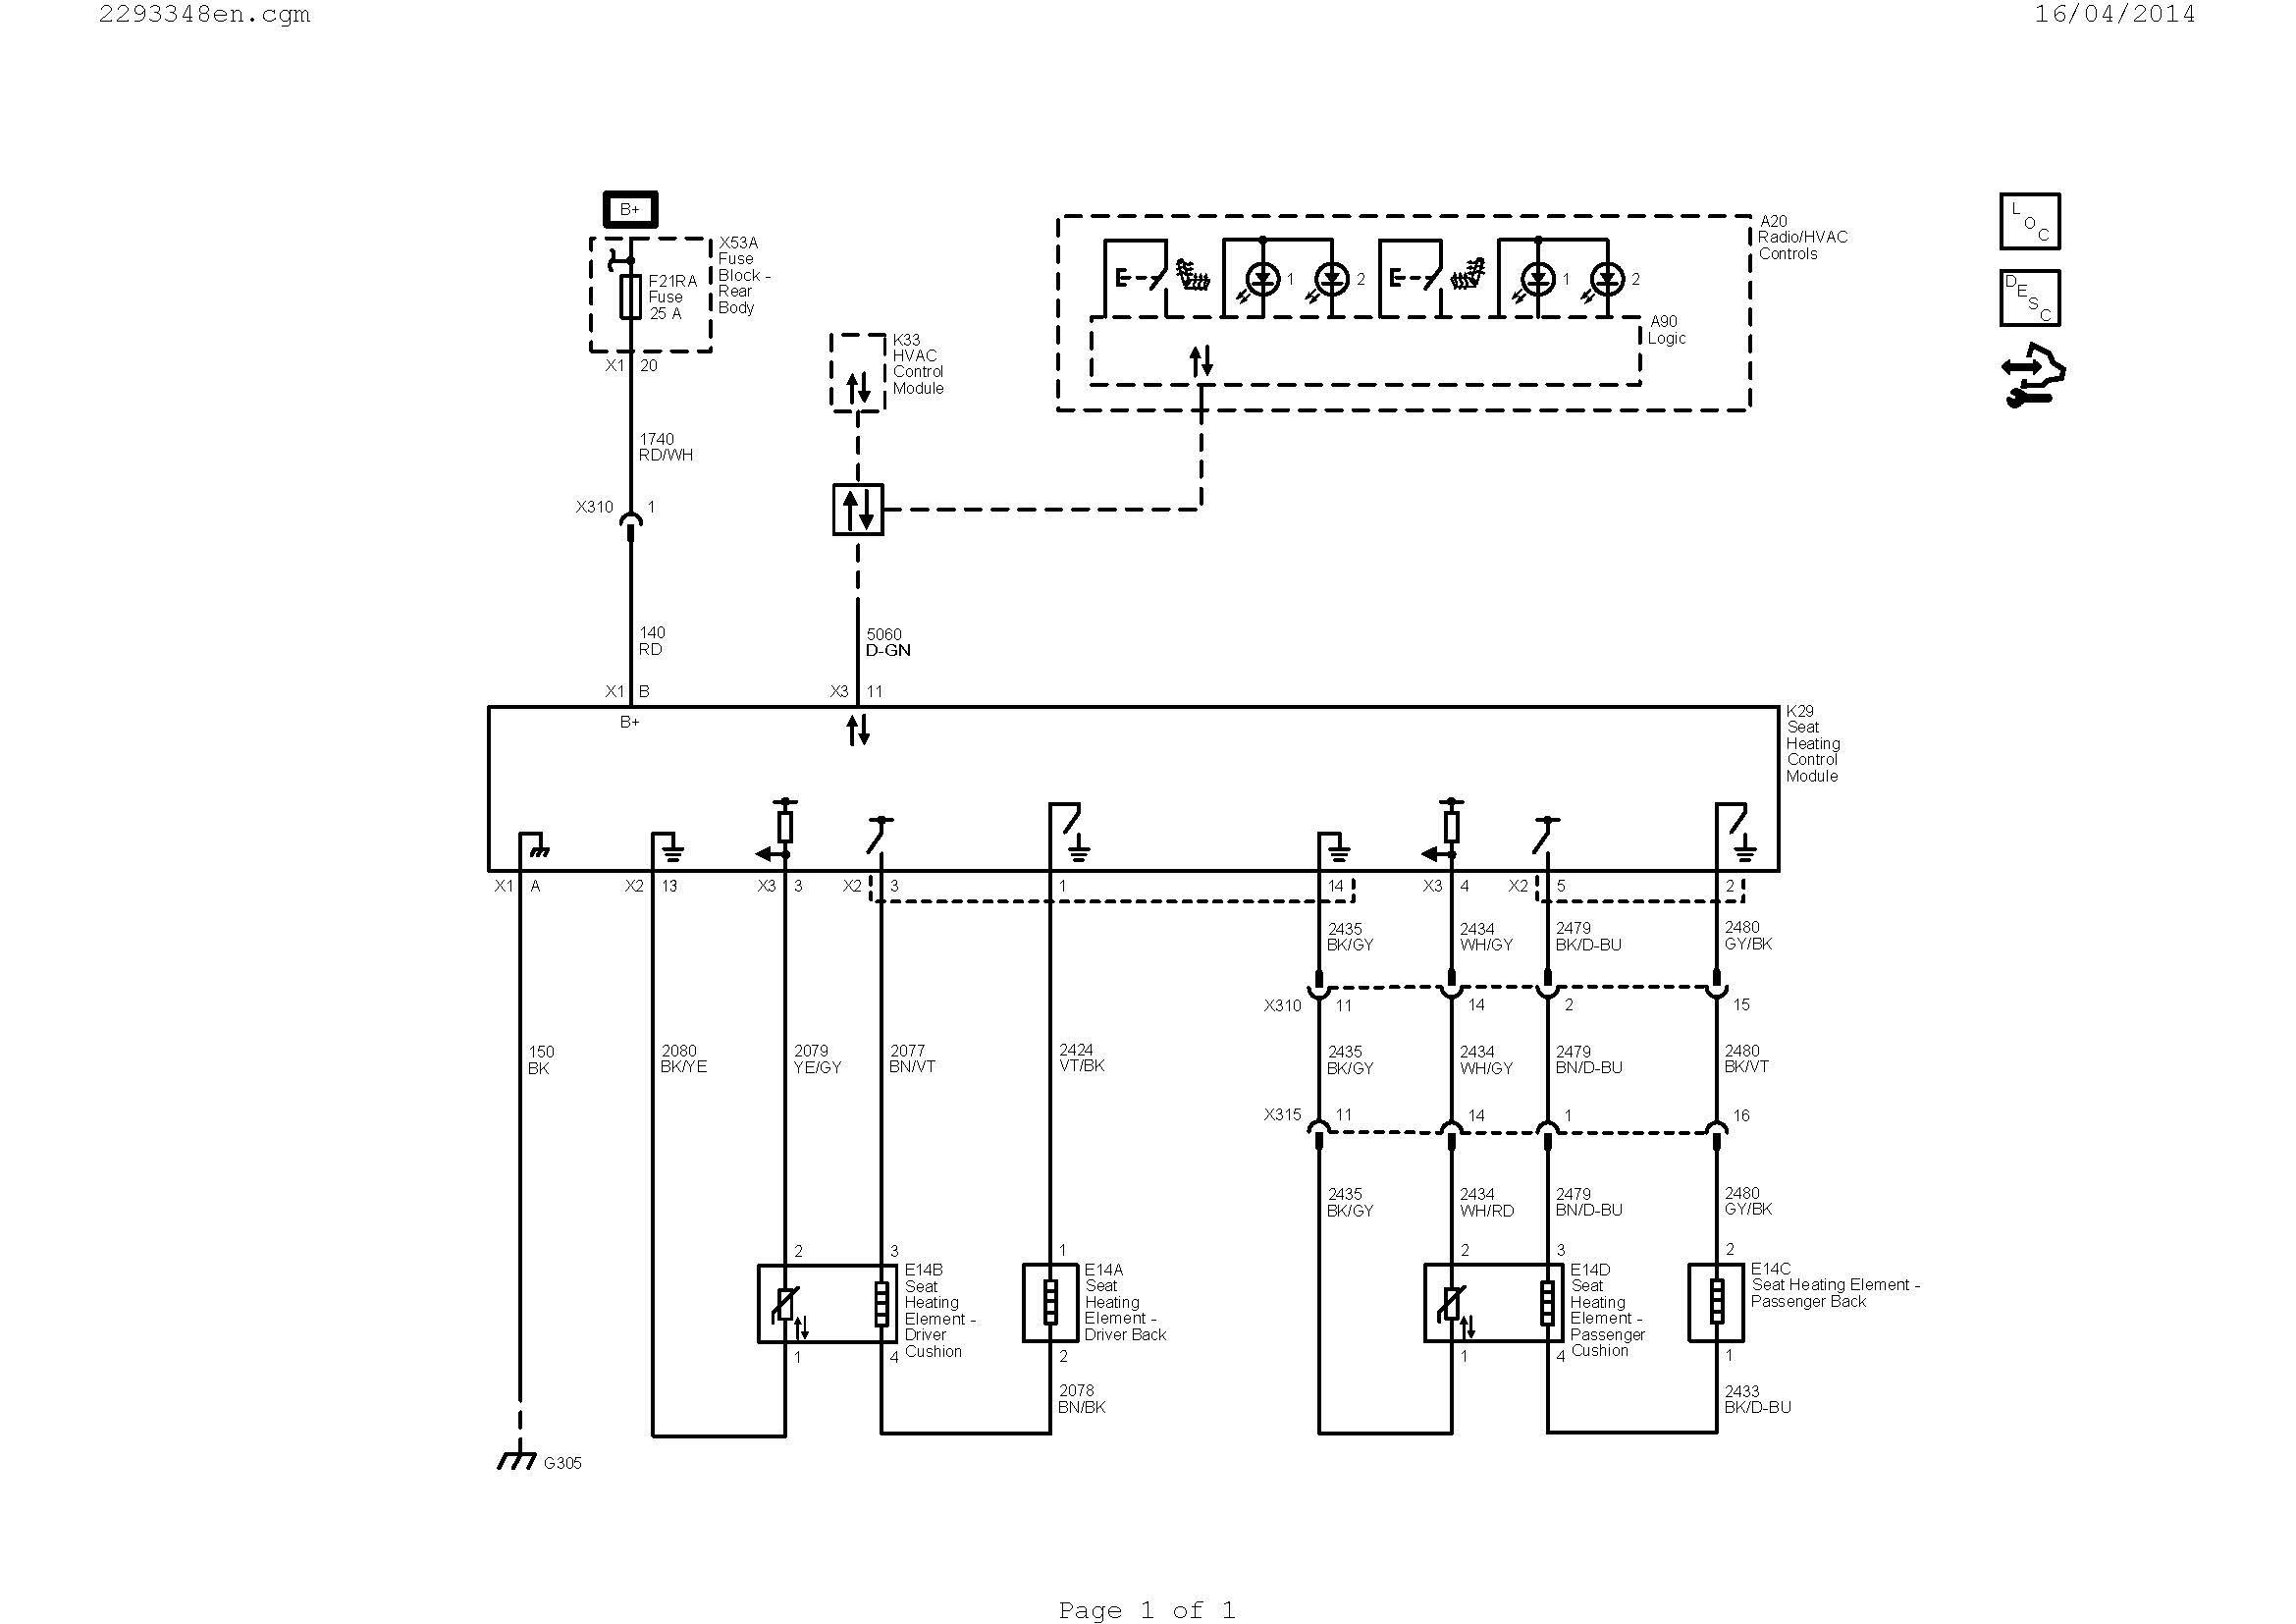 carrier air conditioner wiring diagram Collection-7 wire thermostat wiring diagram Download Wiring A Ac Thermostat Diagram New Wiring Diagram Ac 6-d